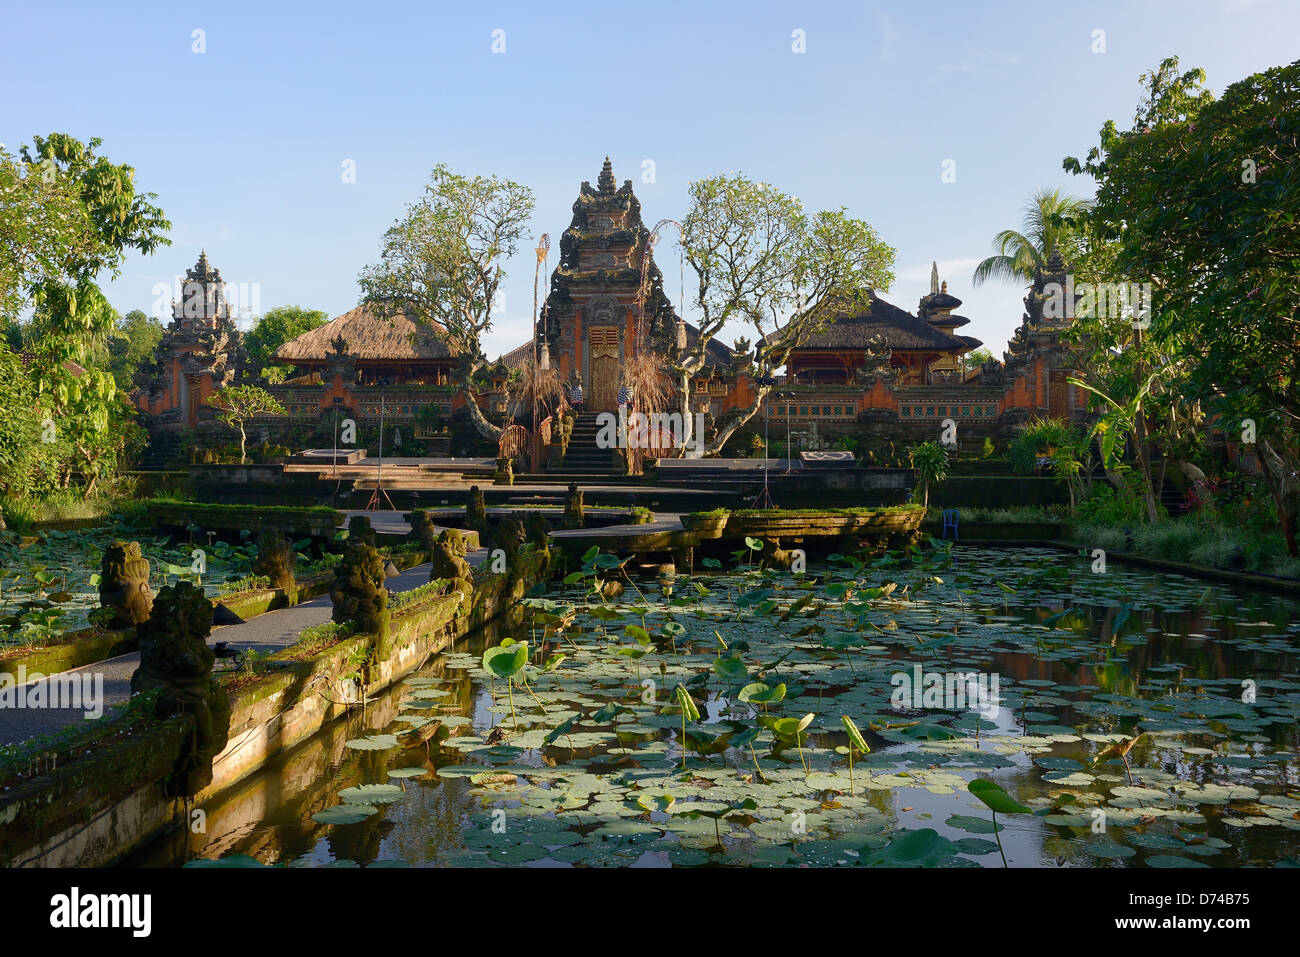 Indonesia, Bali, Ubud, Ornamental pond of the Pura Taman Saraswati temple - Stock Image